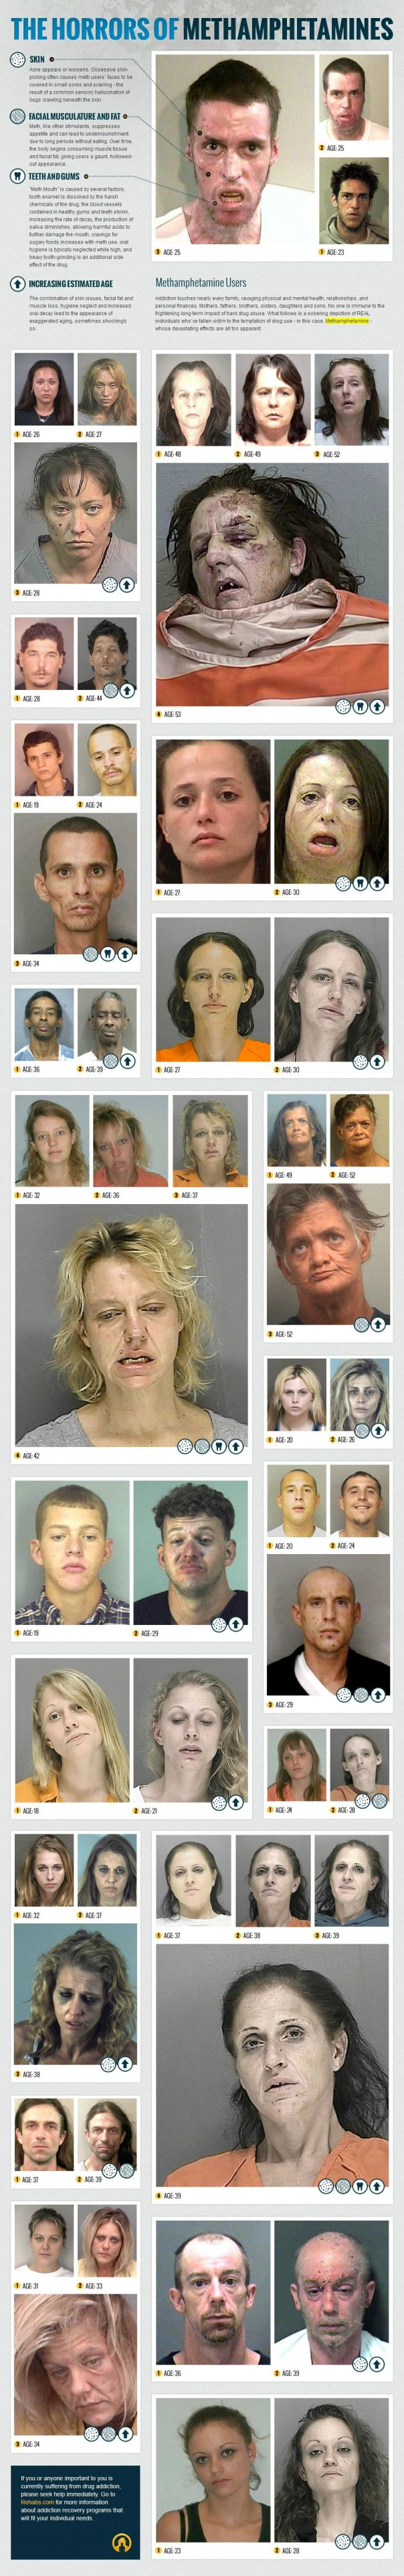 The Horrors of Methamphetamines (courtesy of Rehabs.com)